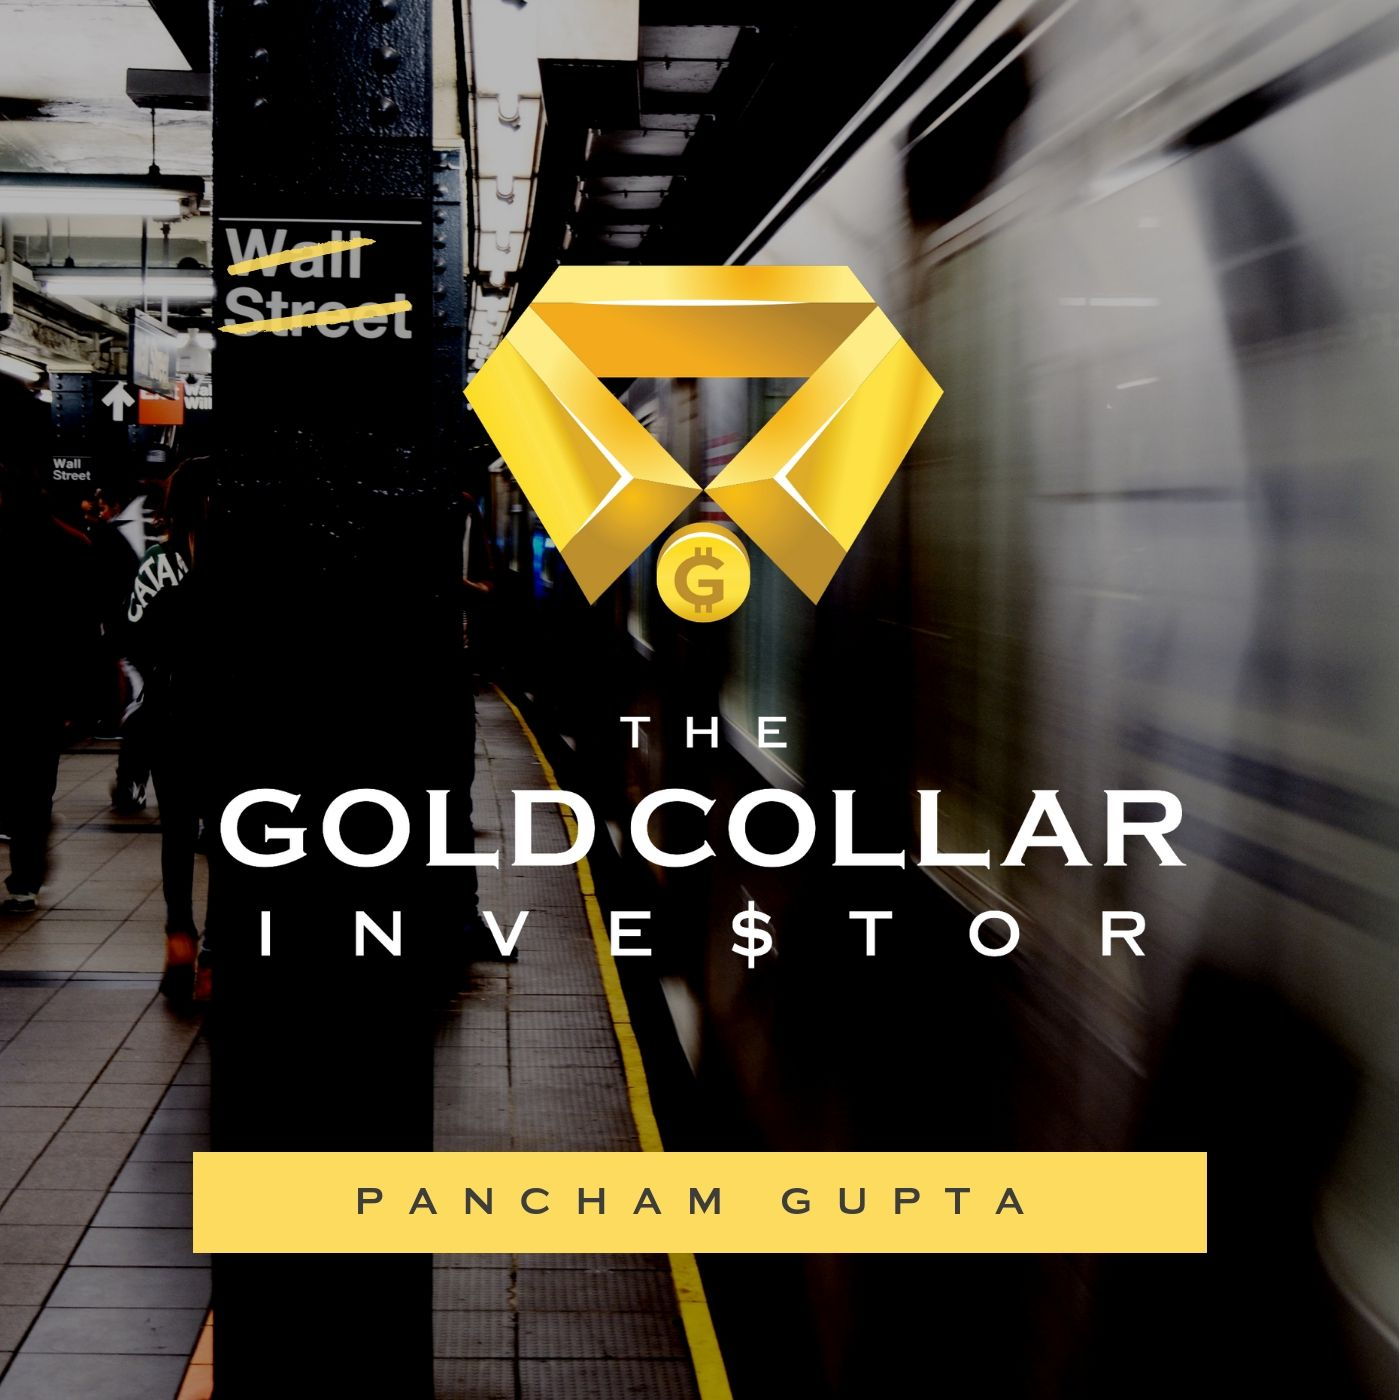 The Gold Collar Investor